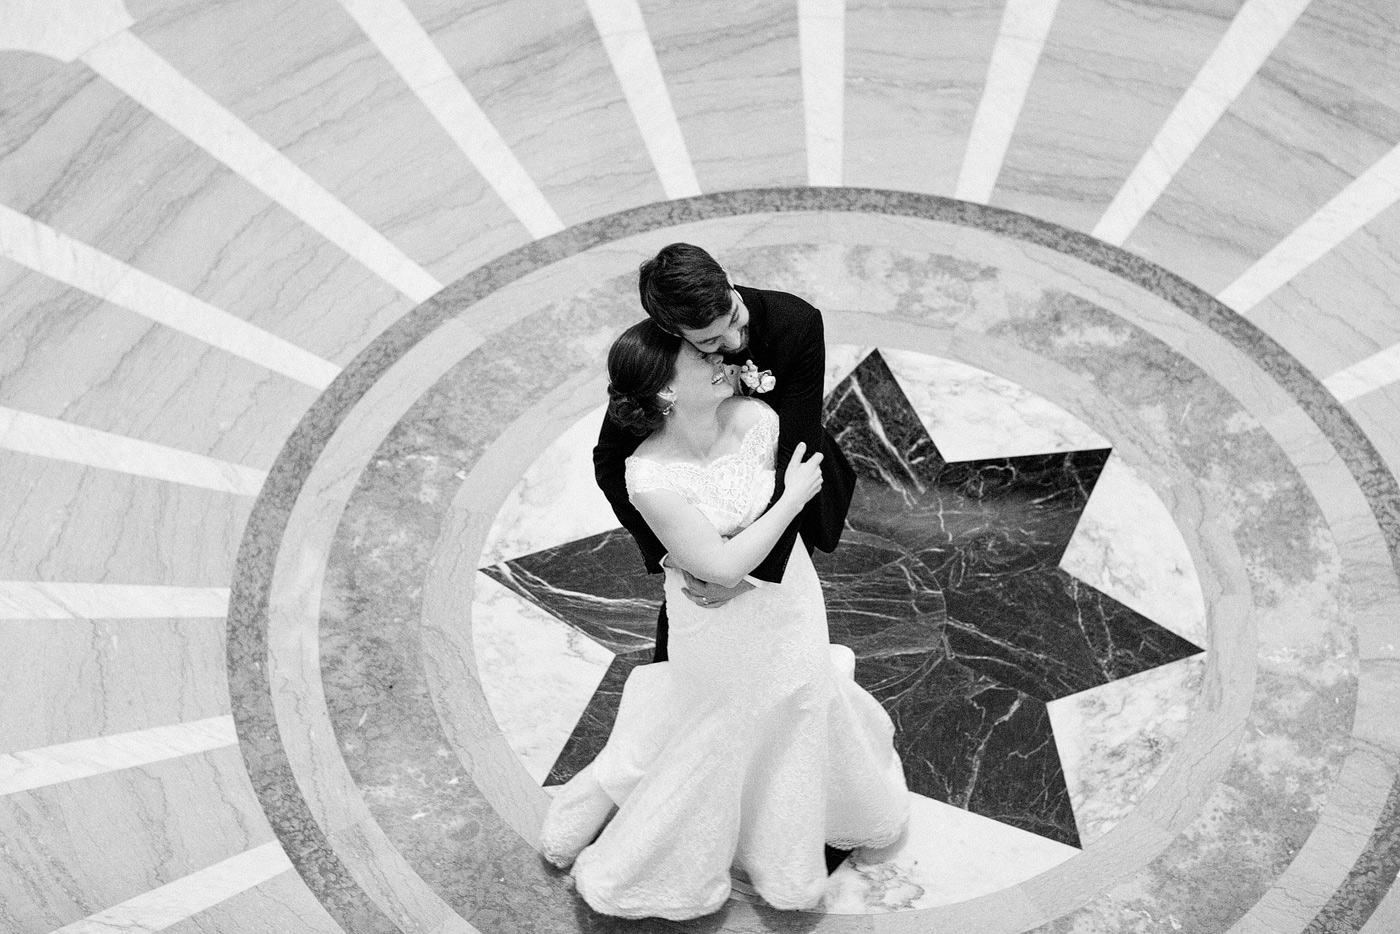 CARNEGIE INSTITUTE for SCIENCE winter wedding